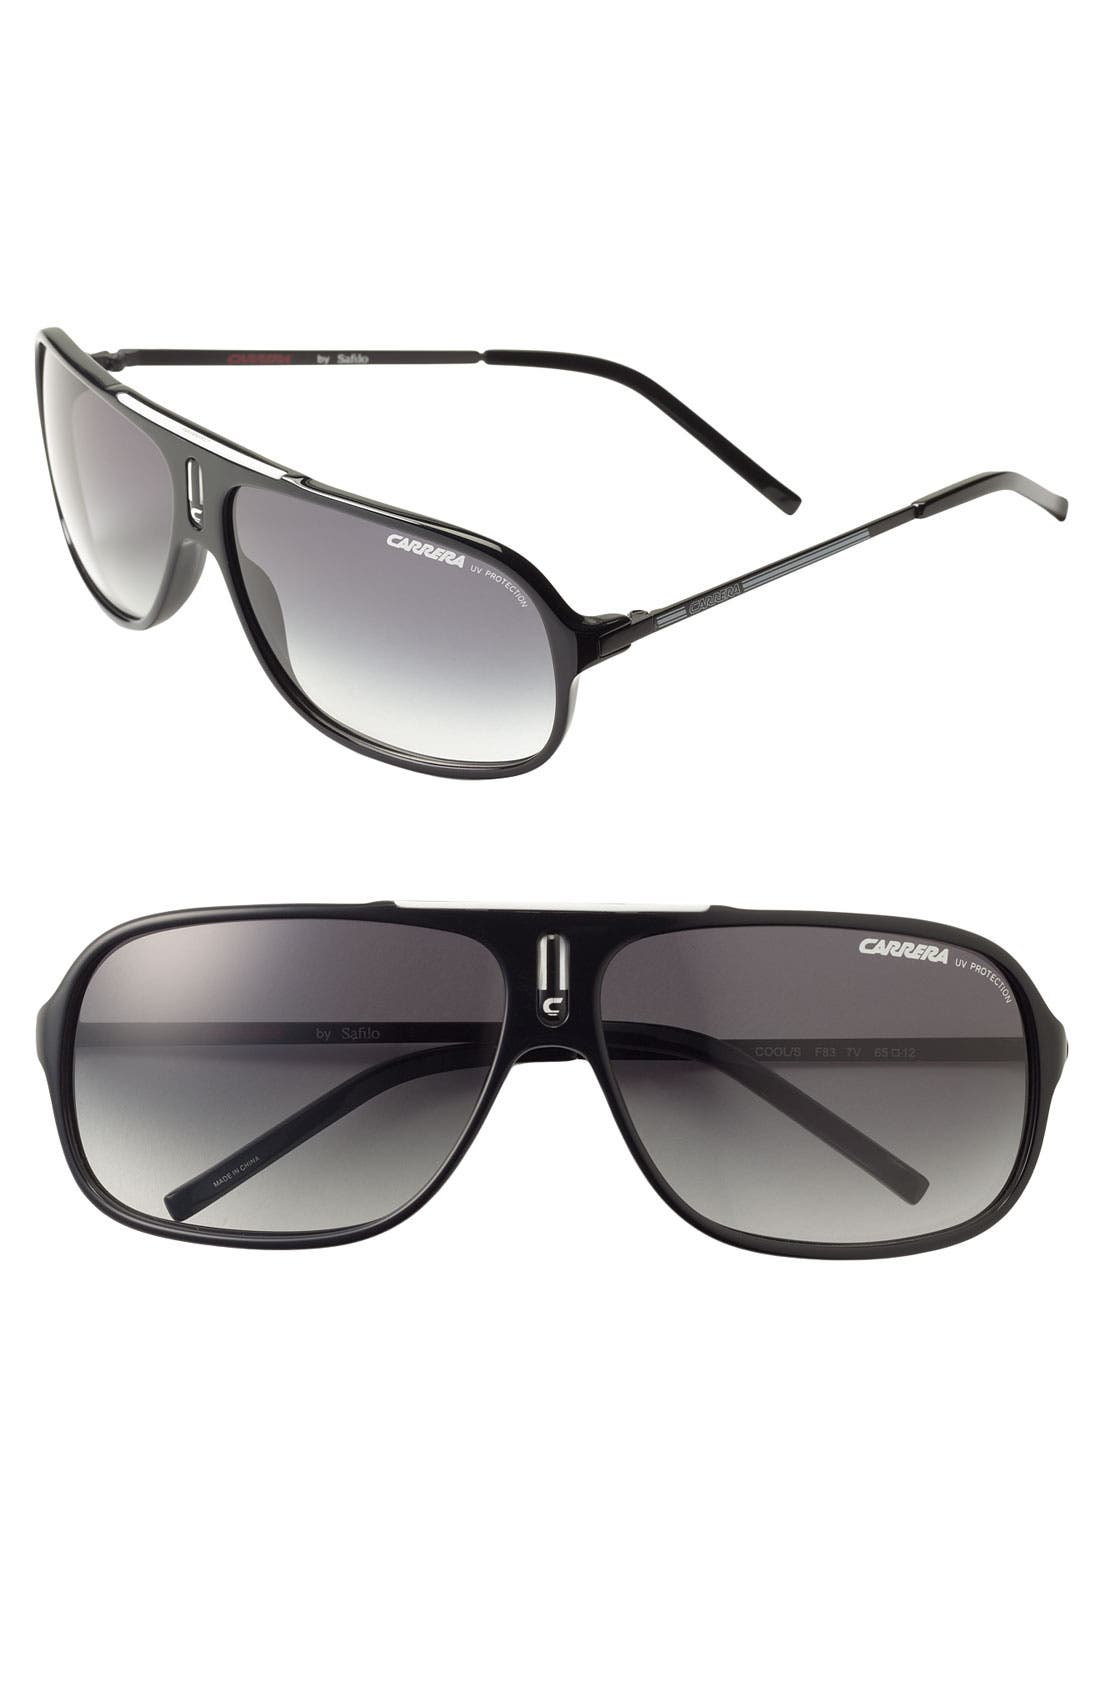 49a28bd46a69f Carrera Sunglasses